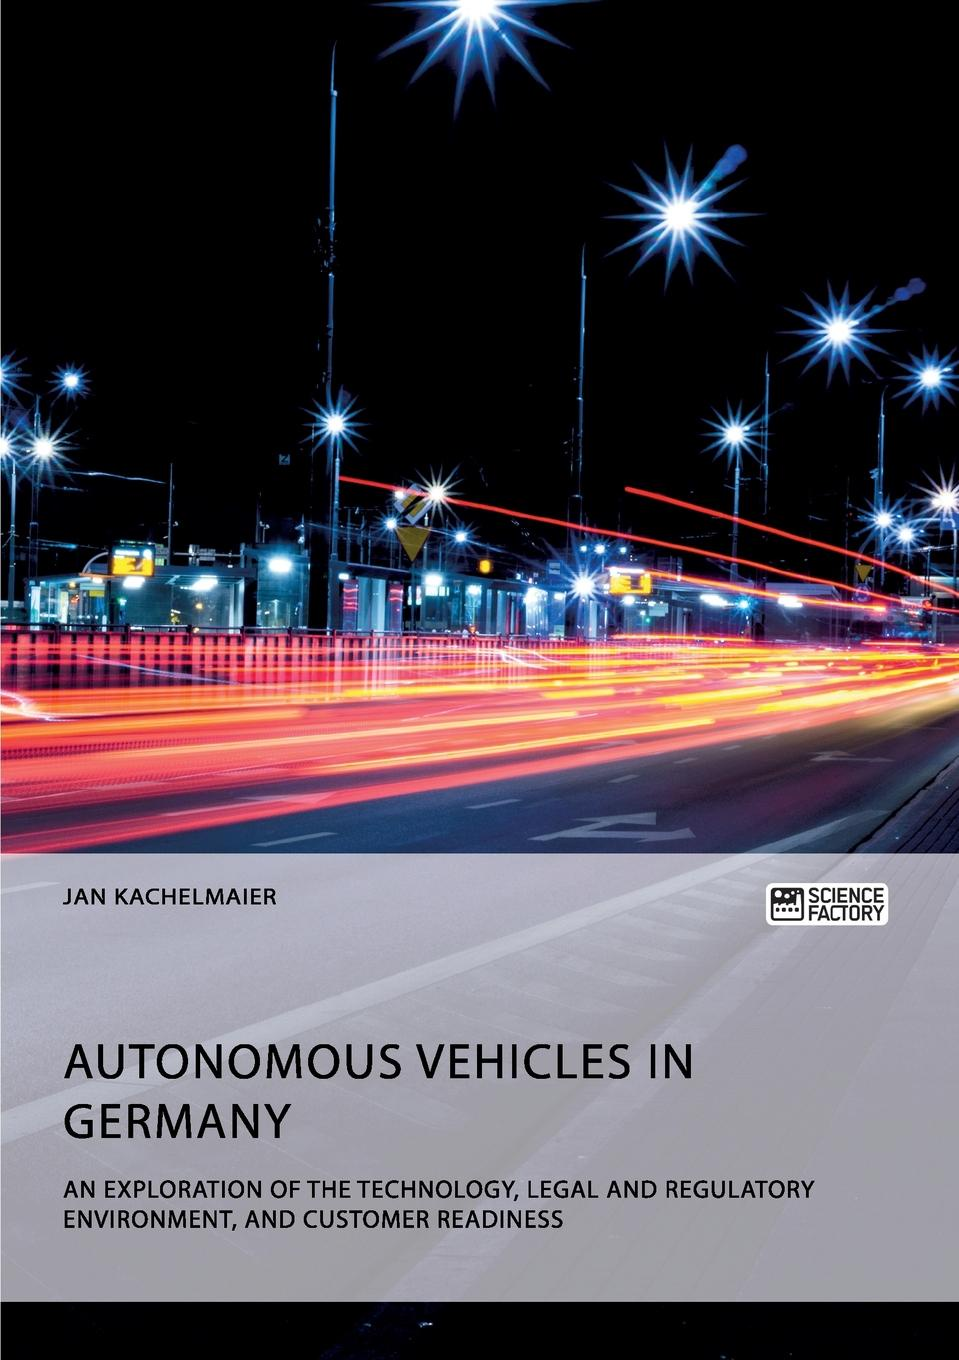 Jan Kachelmaier Autonomous Vehicles in Germany. An Exploration of the Technology, Legal and Regulatory Environment, and Customer Readiness kevin mader jimmy ng ilya gribov esplanade runner autonomous vehicle navigation in small vehicles